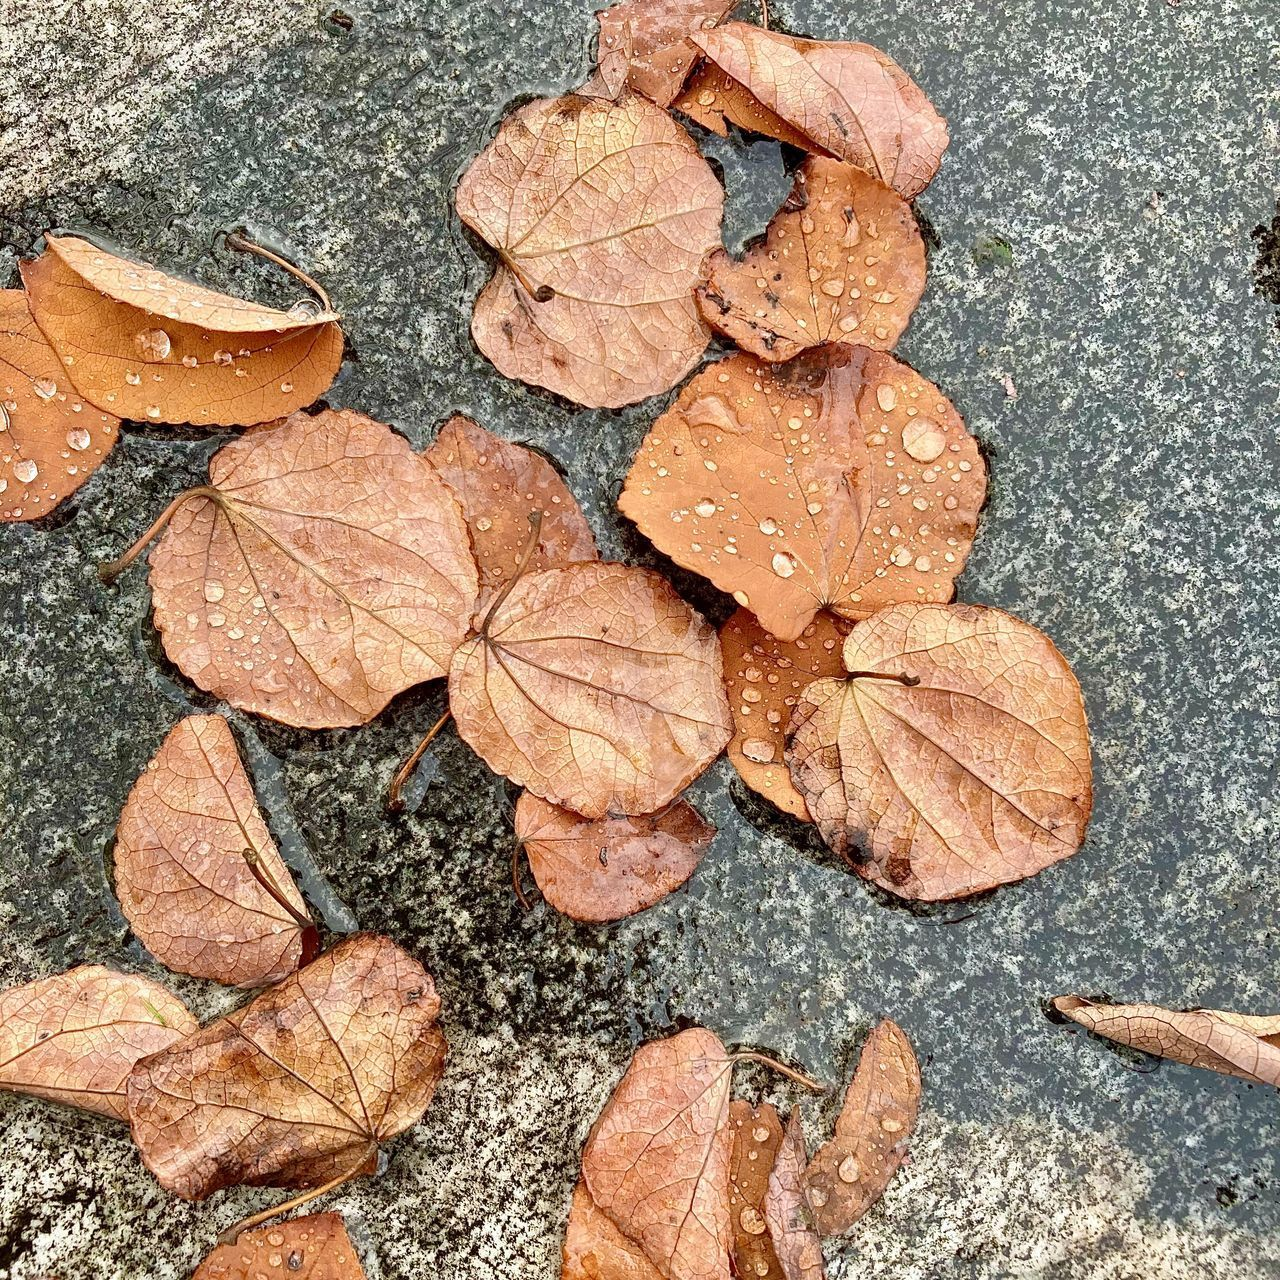 HIGH ANGLE VIEW OF WET DRY LEAVES